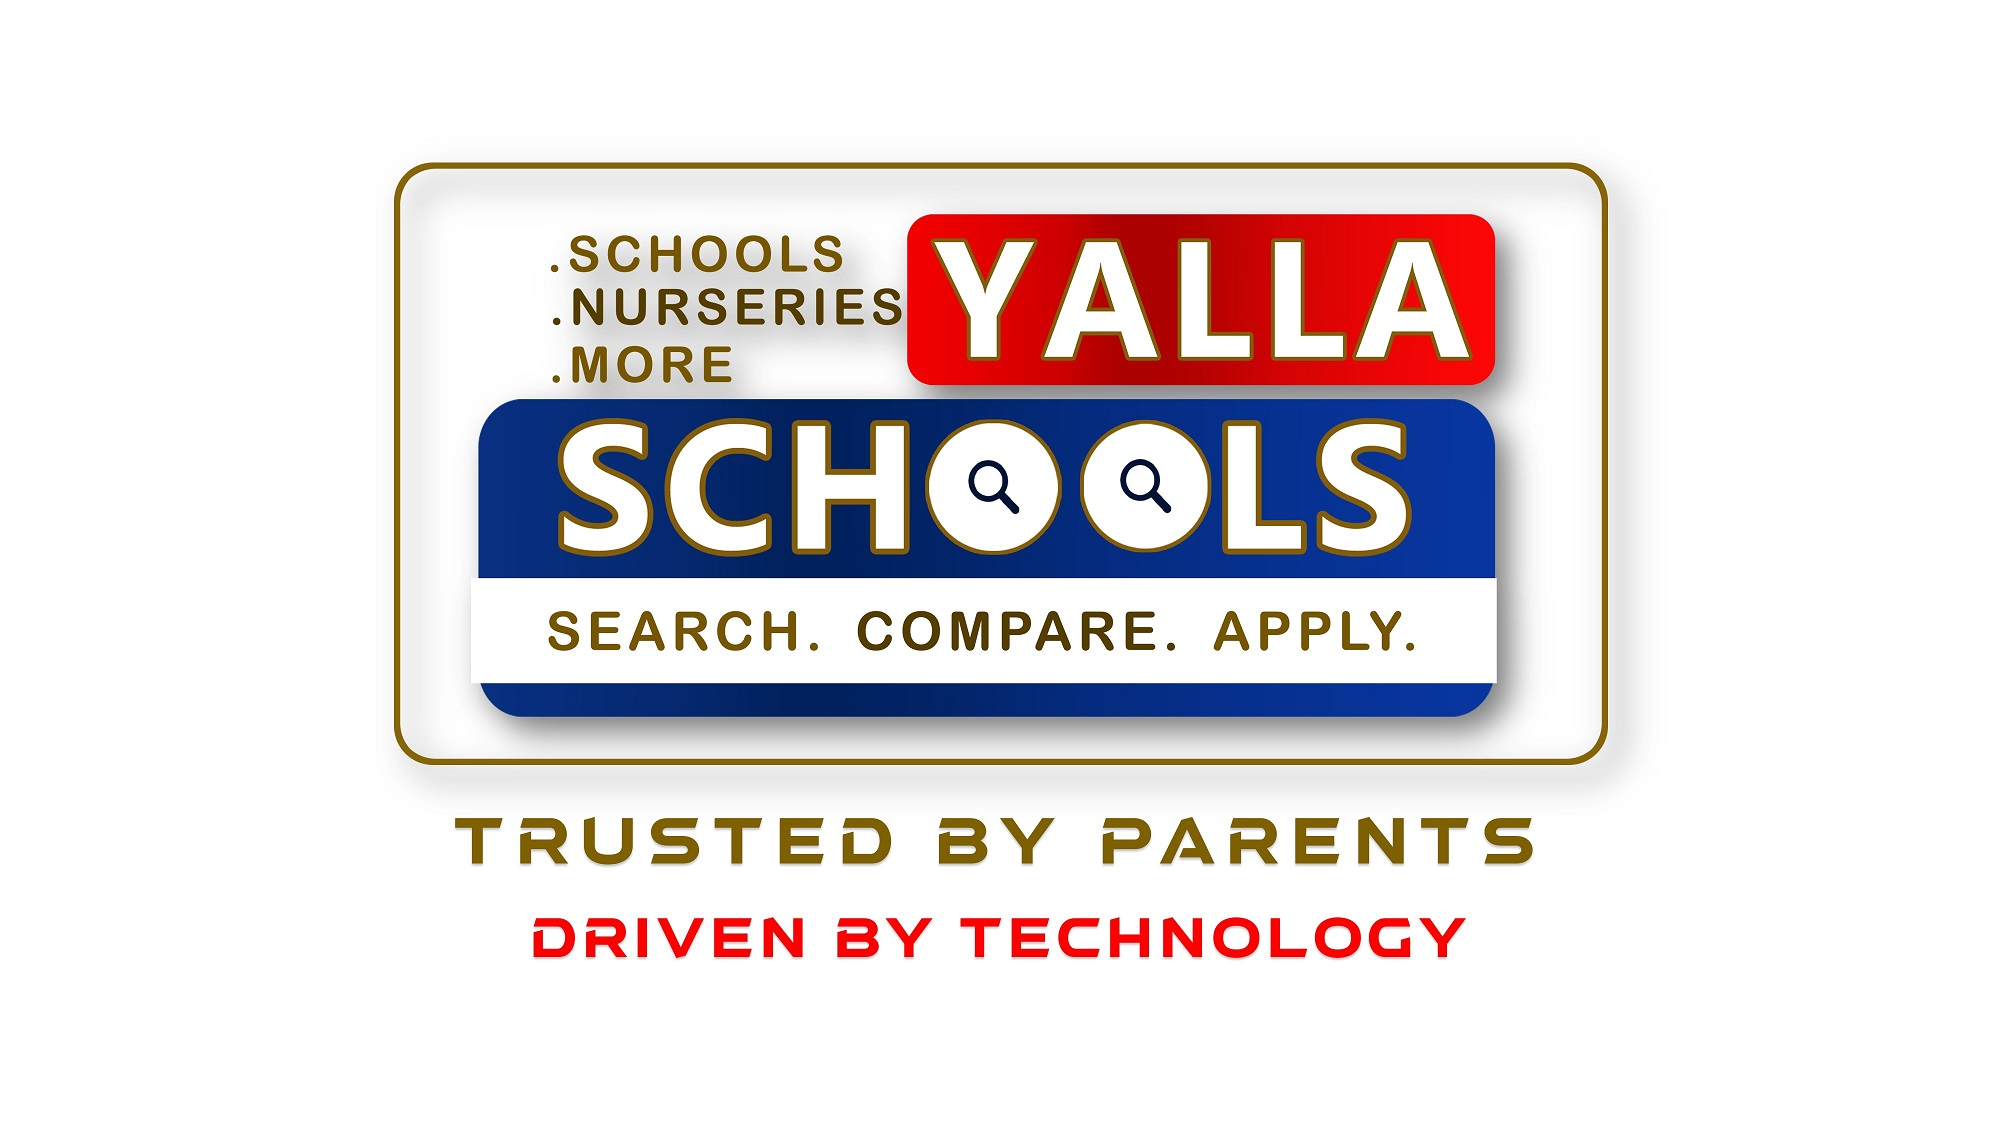 YallaSchools_-_Trusted_by_Parents,_Driven_by_Technology11